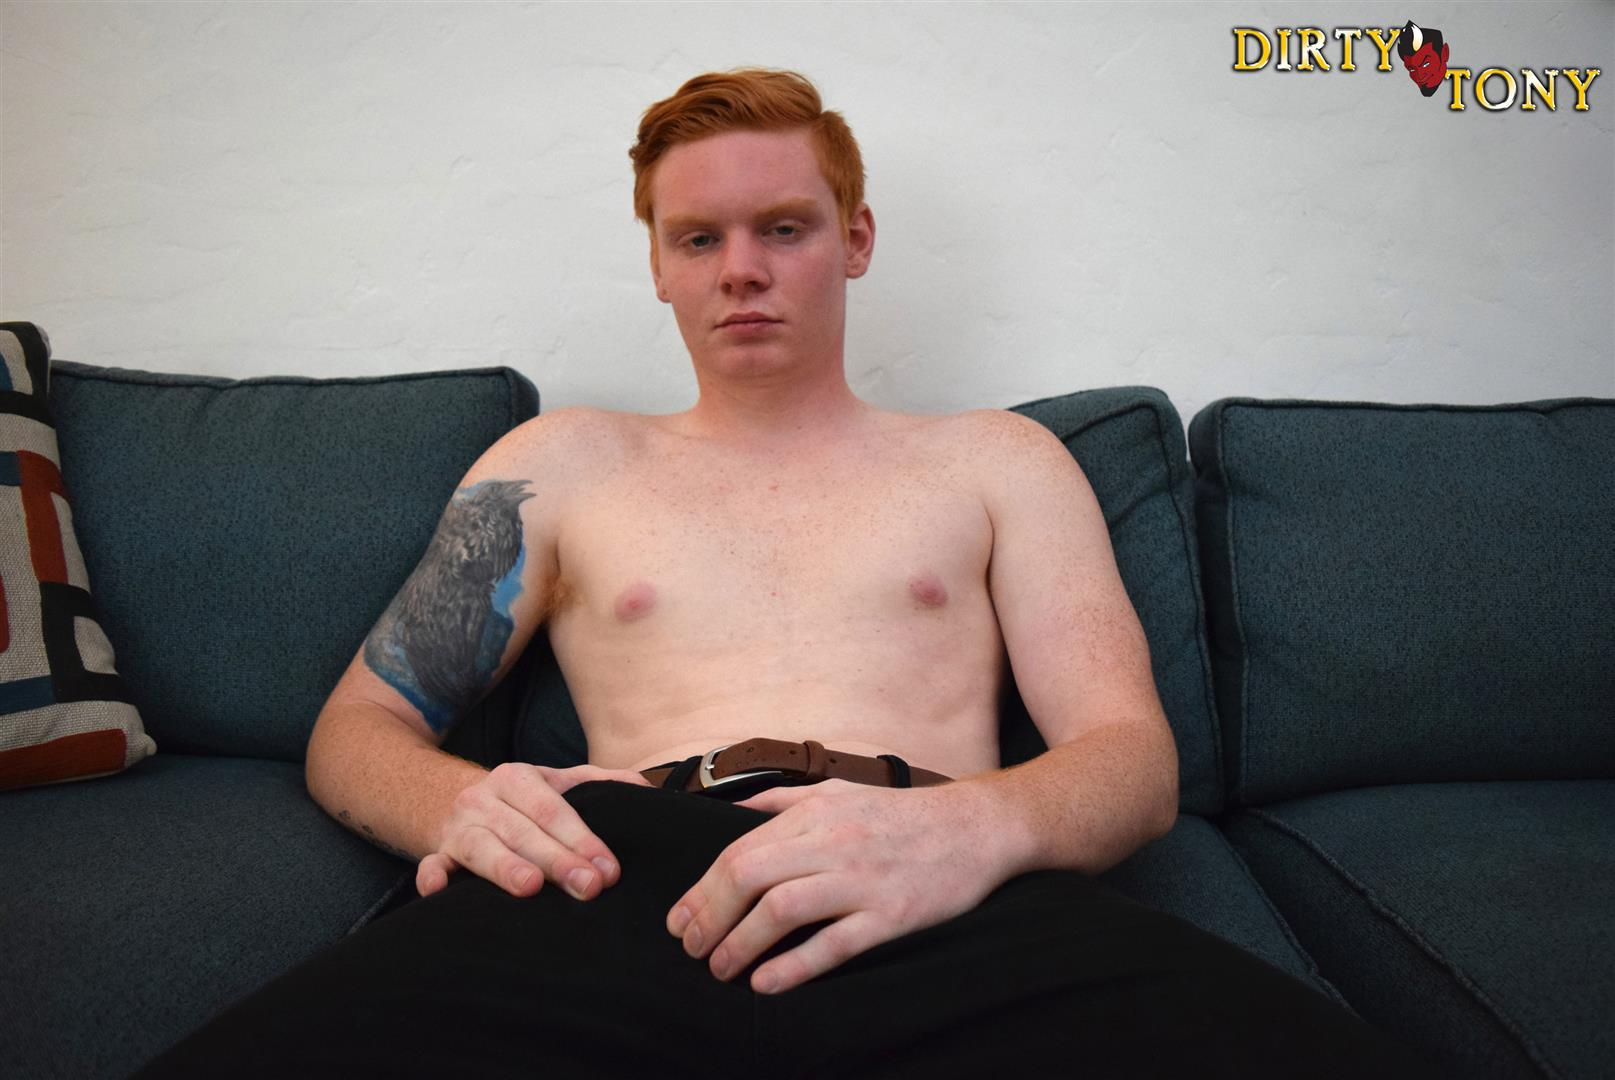 Dirty-Tony-Max-Breeker-Redheaded-Twink-Masturbation-Amateur-Gay-Porn-02 Bisexual 19 Year Old Redheaded Twink Auditions For Gay Porn